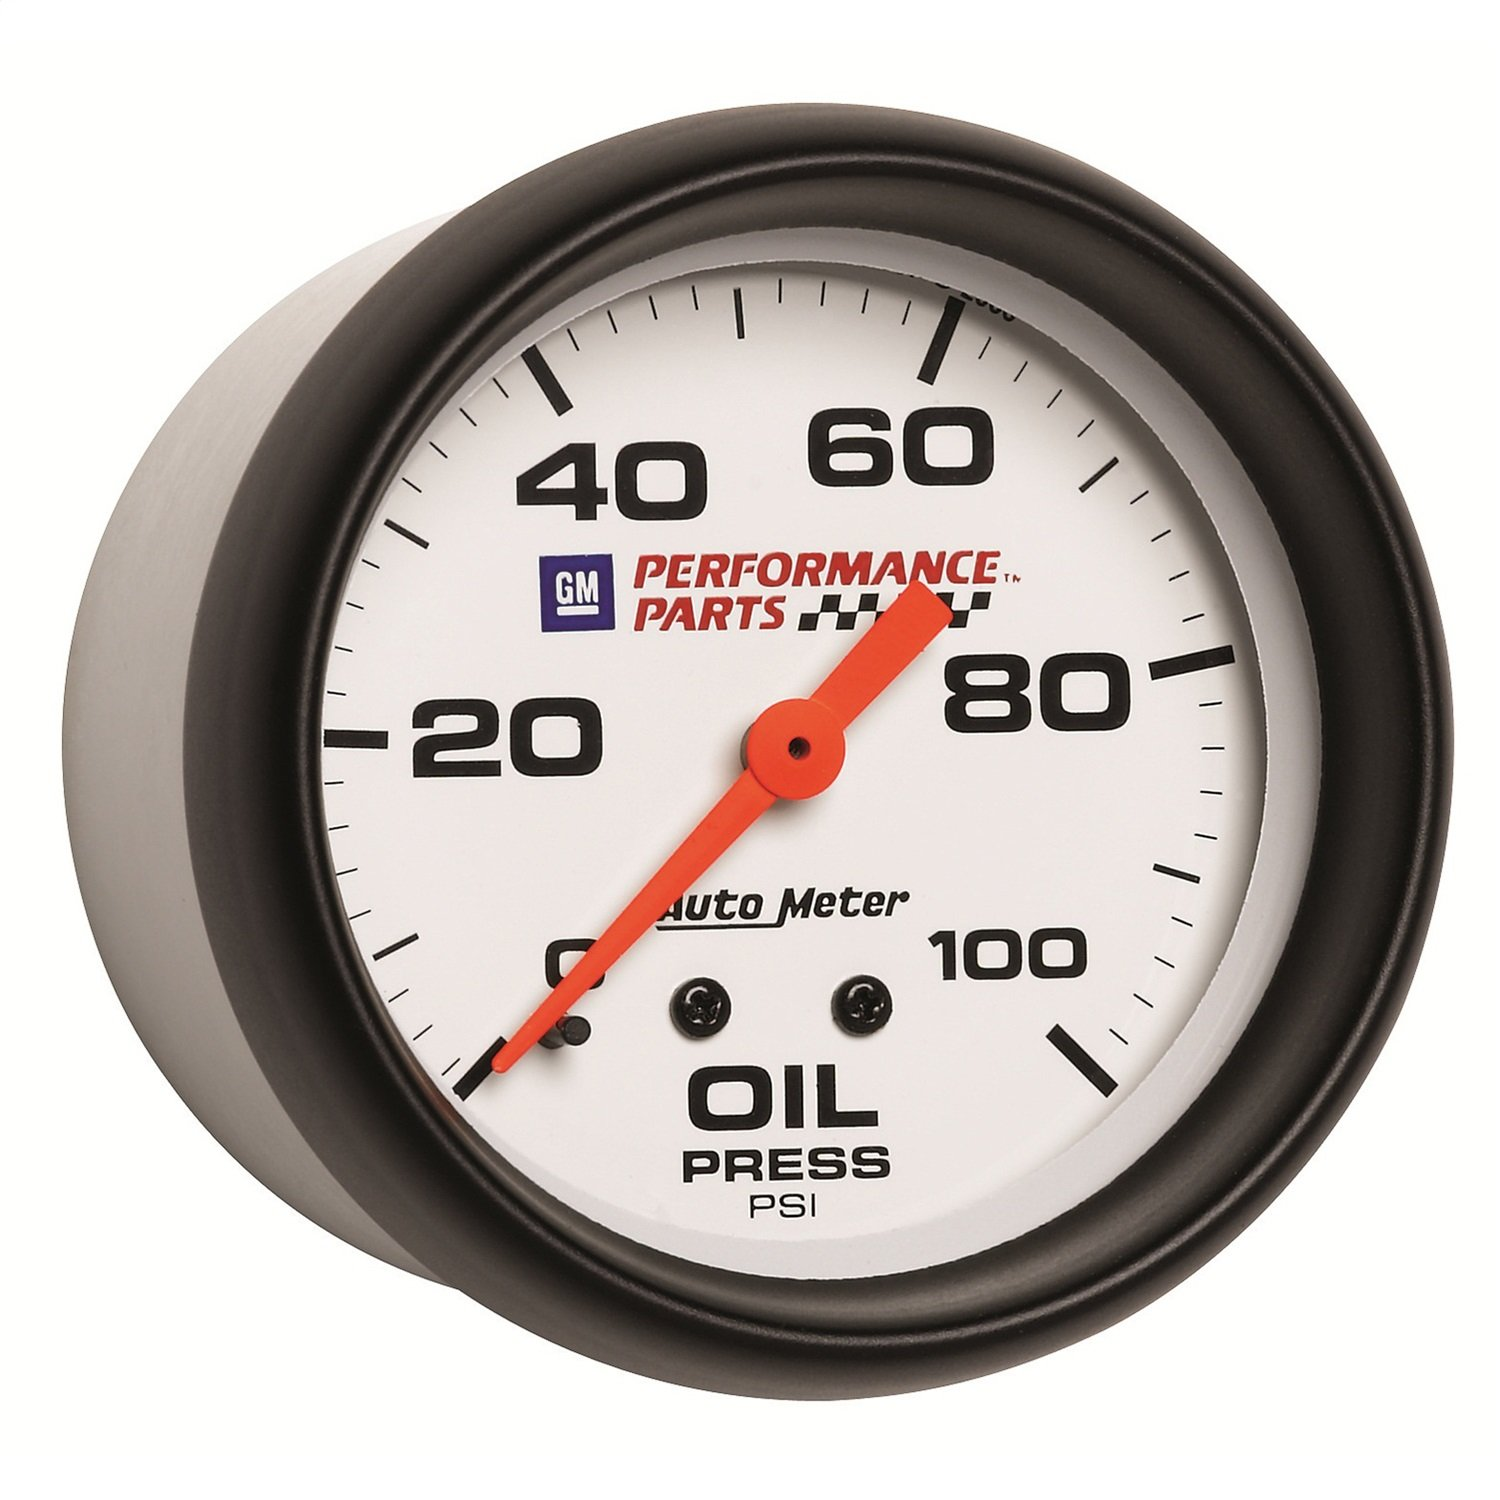 Auto Meter 5821-00407 GM Performance Parts 2-5/8' 0-100 PSI Mechanical Oil Pressure Gauge